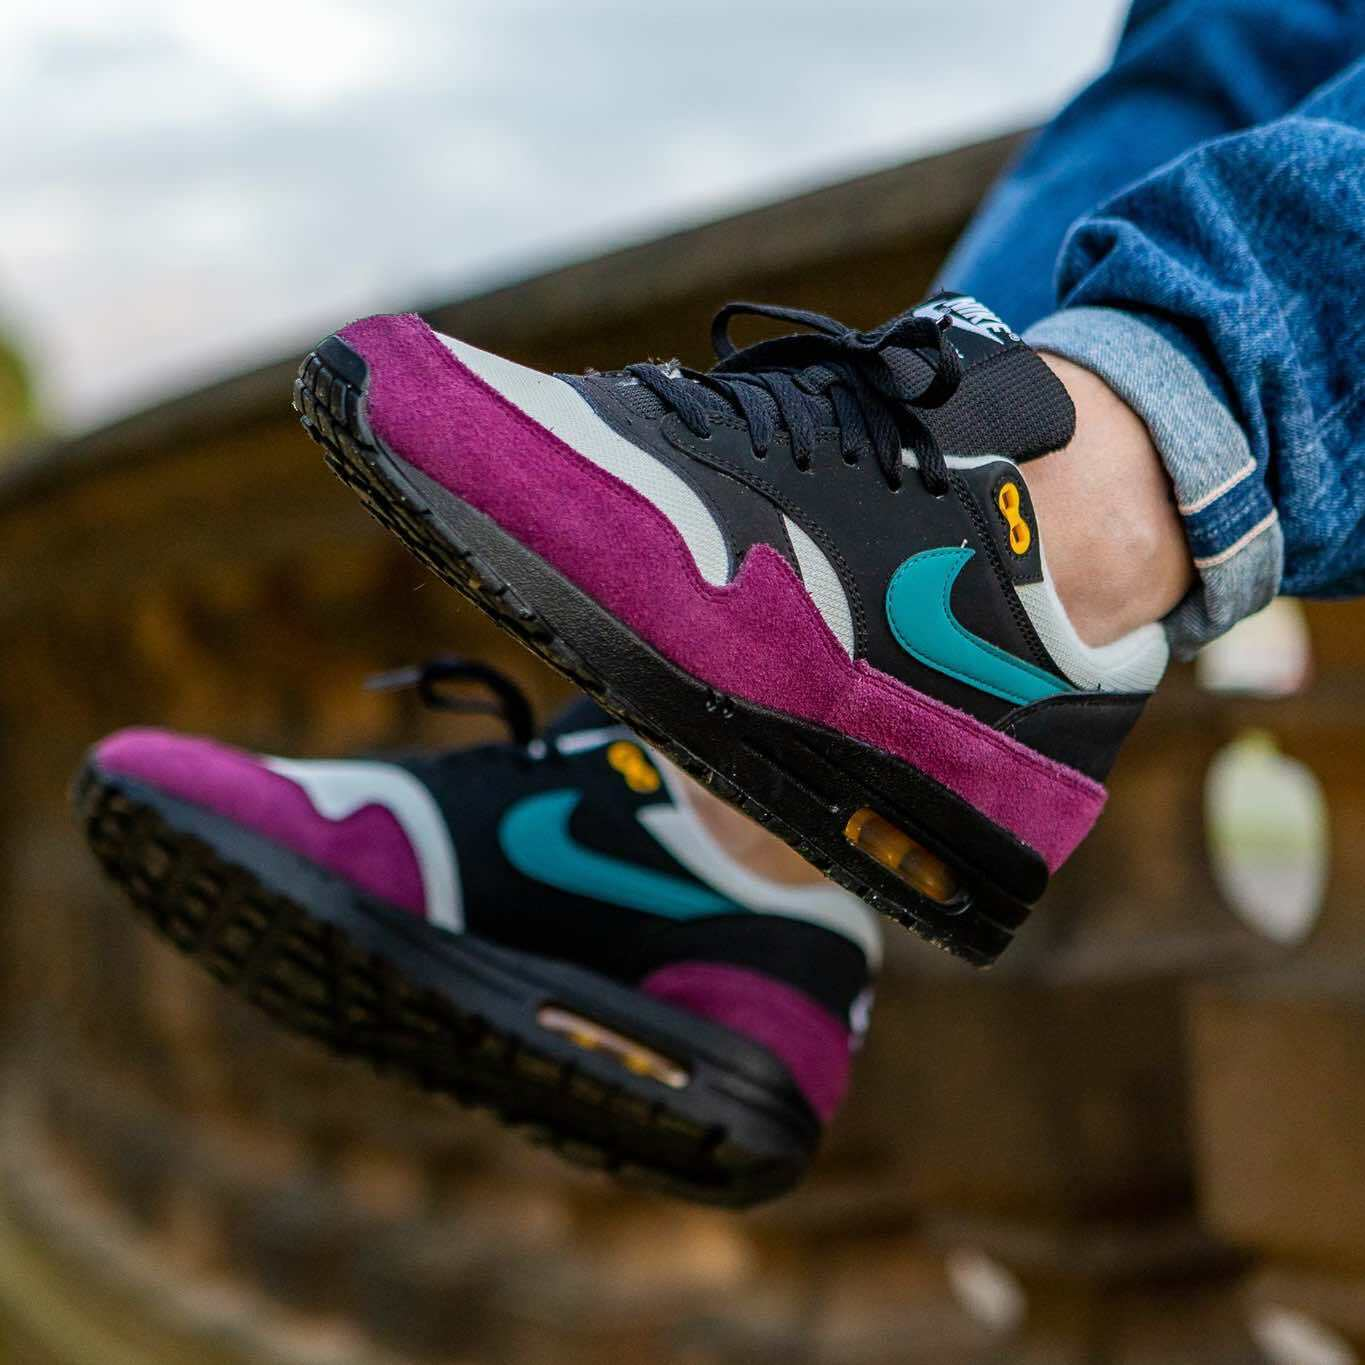 NIKE AIR MAX 1  GEODE TEAL  (319986 040) UNISEX TRAINERS UK 5-8